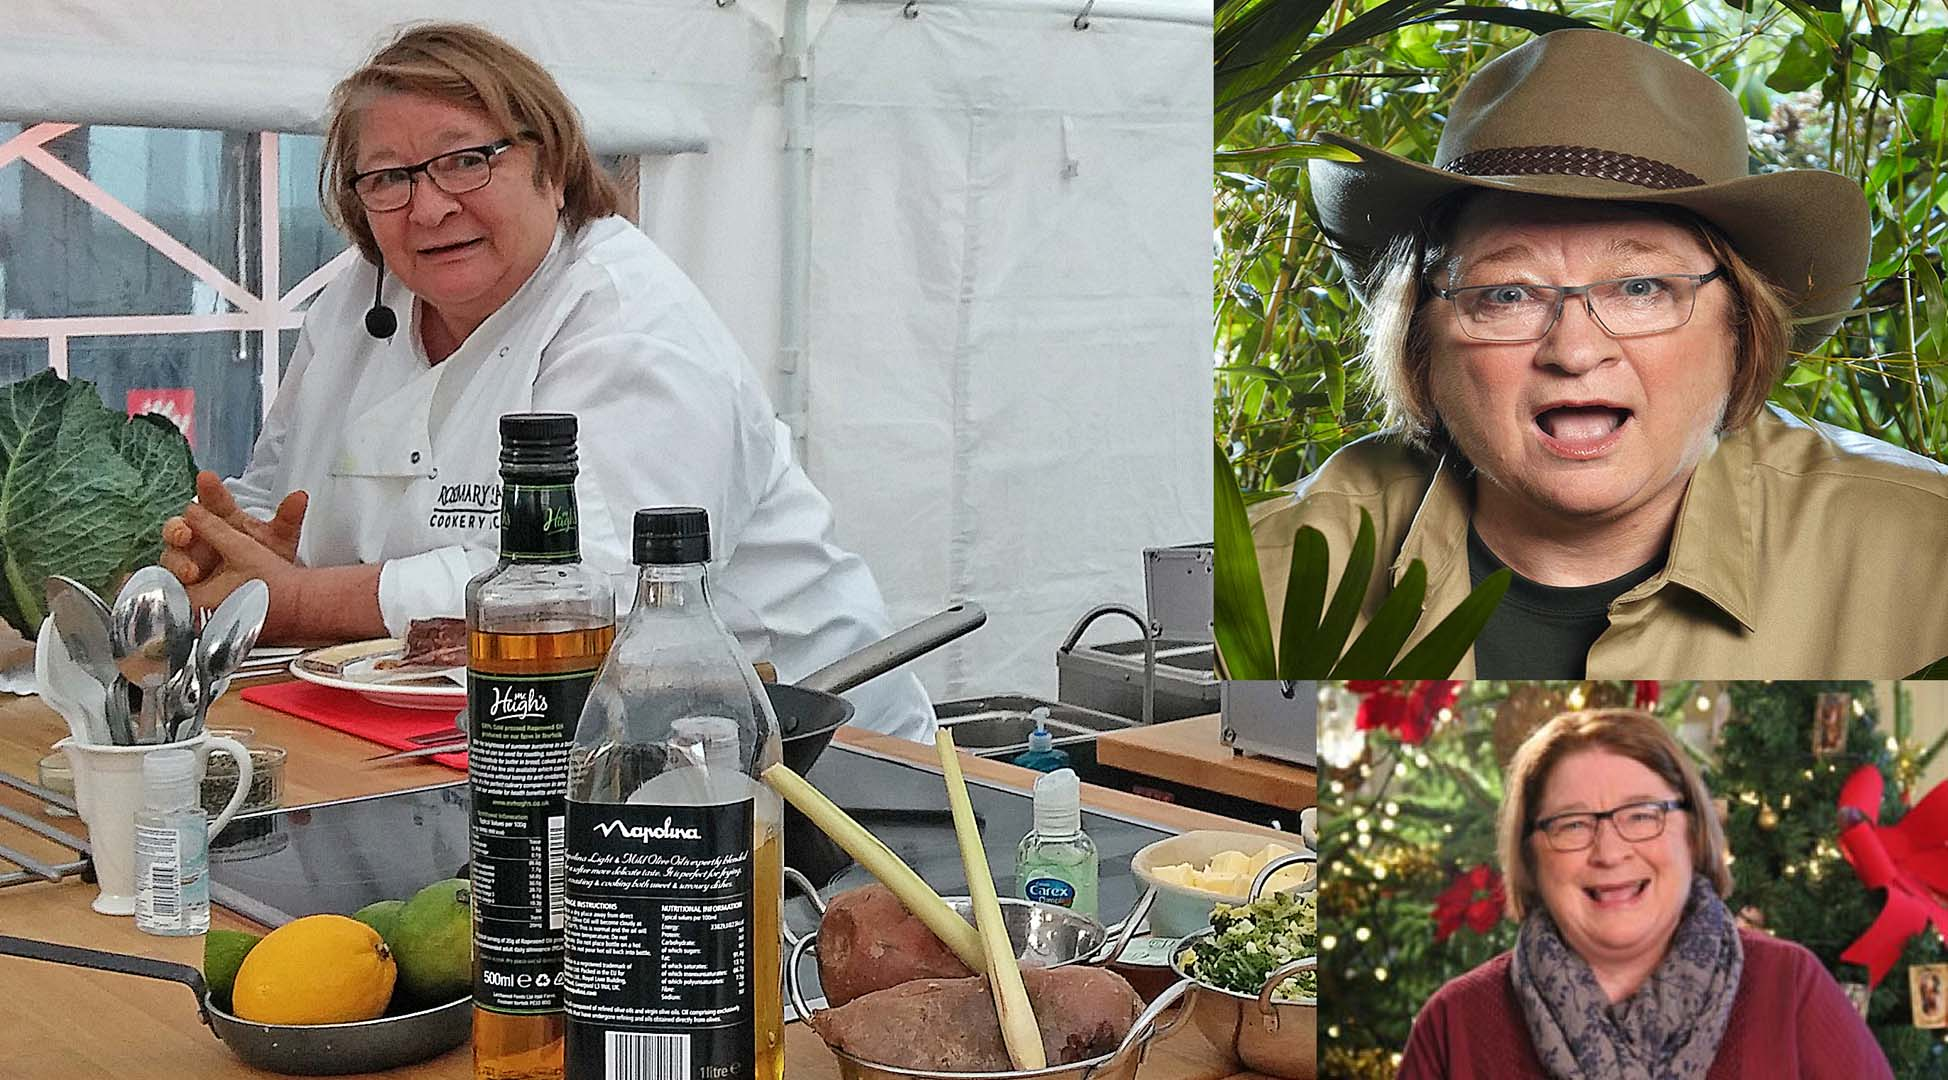 Celebrity Chef Rosemary Shrager cooking at Watford Market